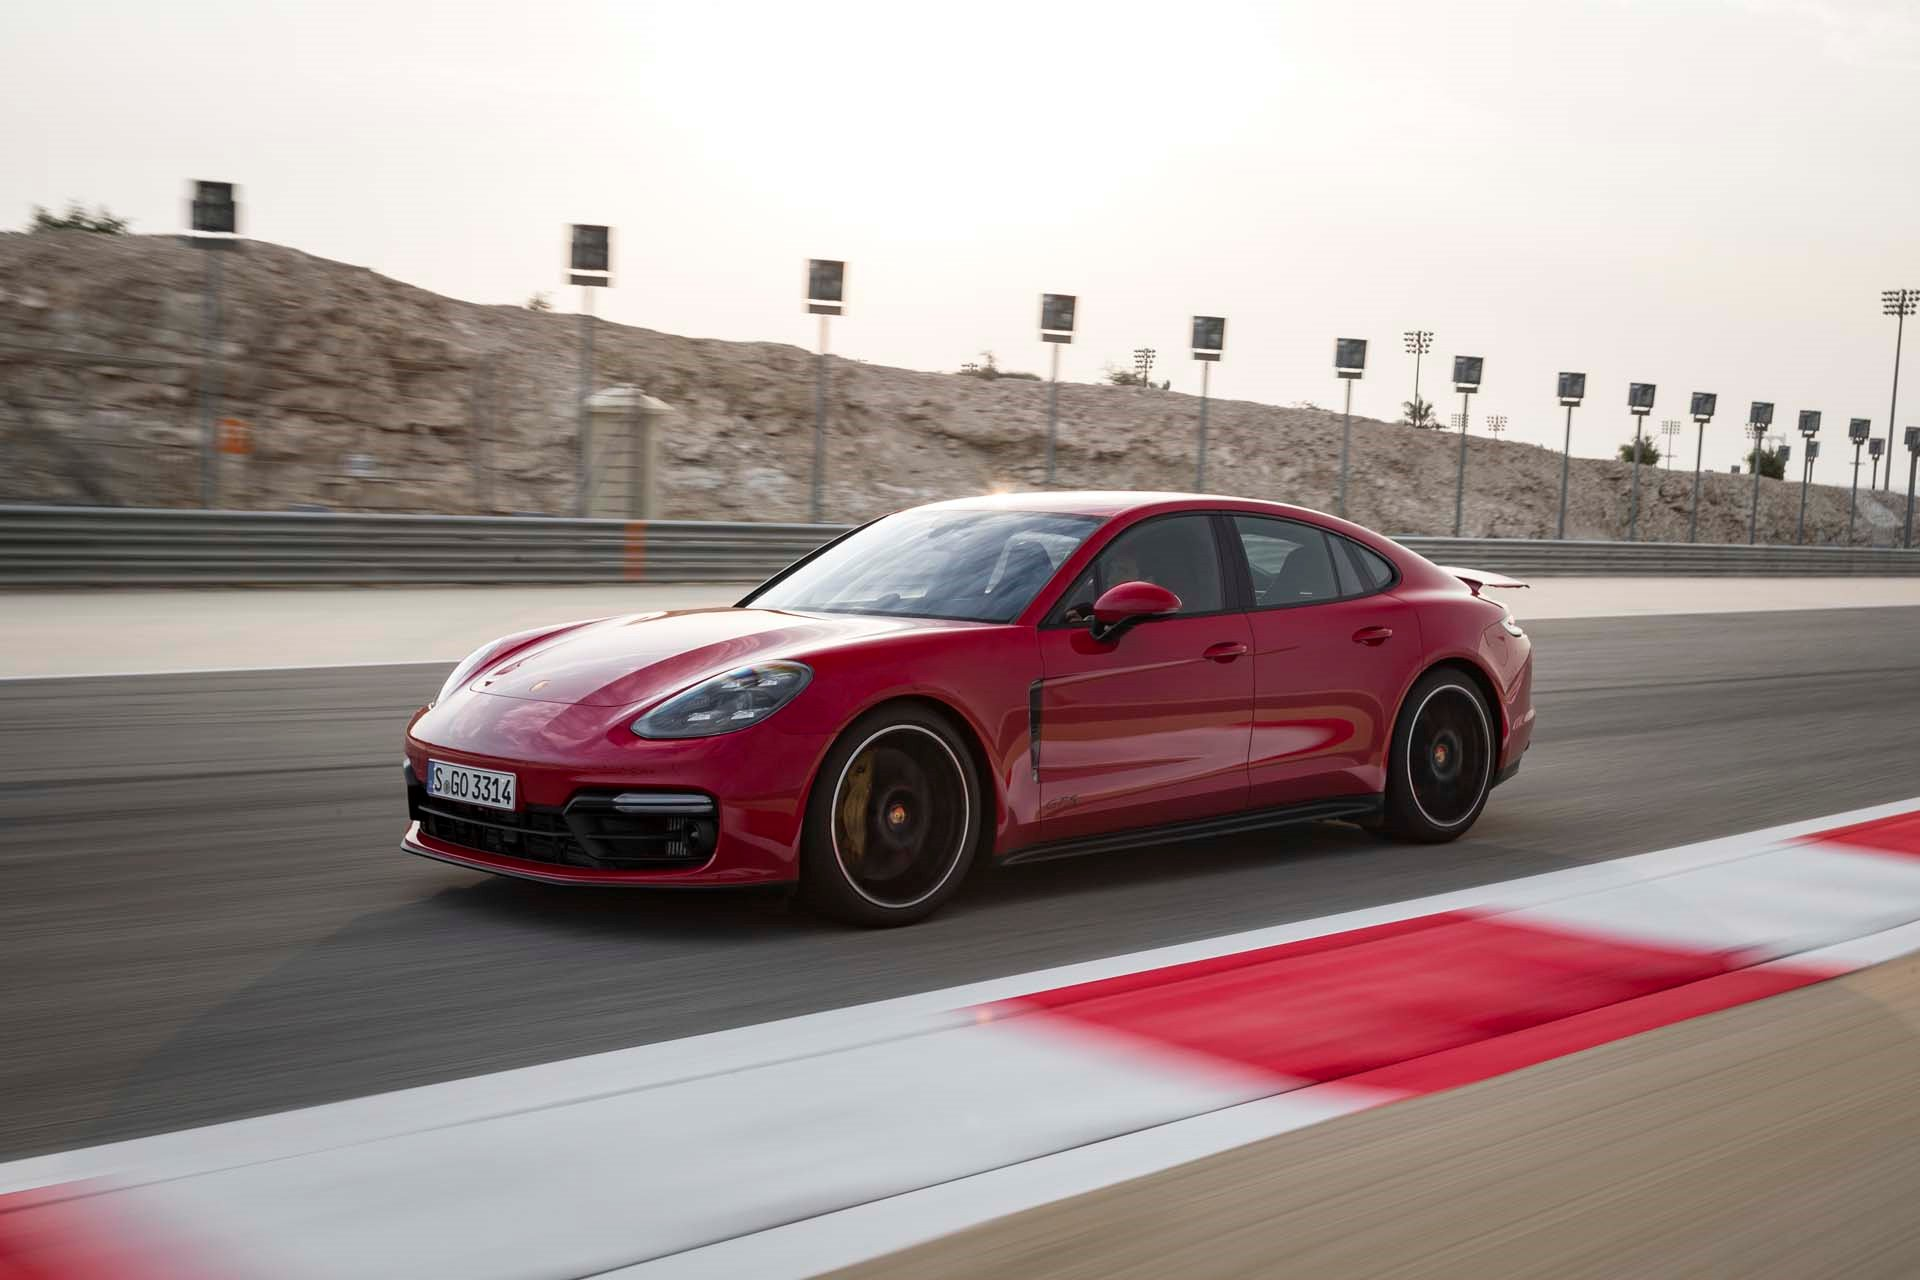 New 2019 Porsche-Panamera 4 Panamera 4 for sale $90,900 at M and V Leasing in Brooklyn NY 11223 1